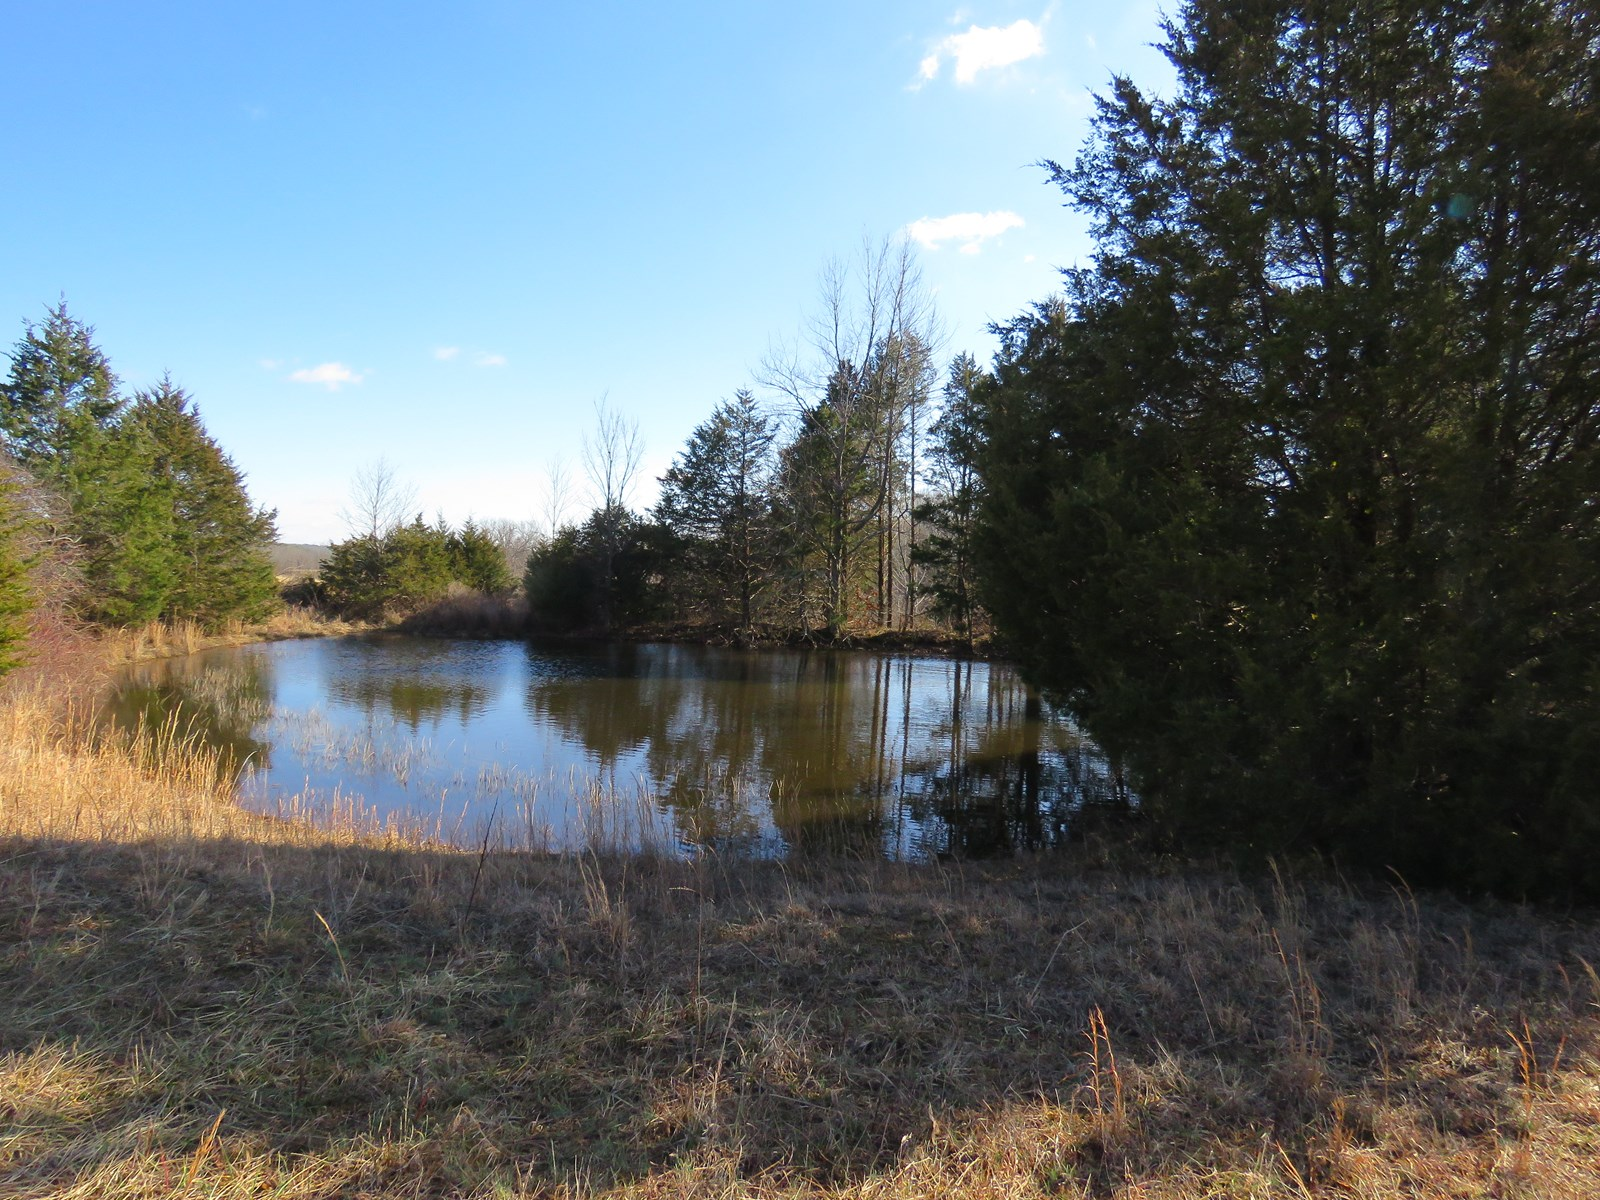 Land for sale in the Ozarks! Ava, mo